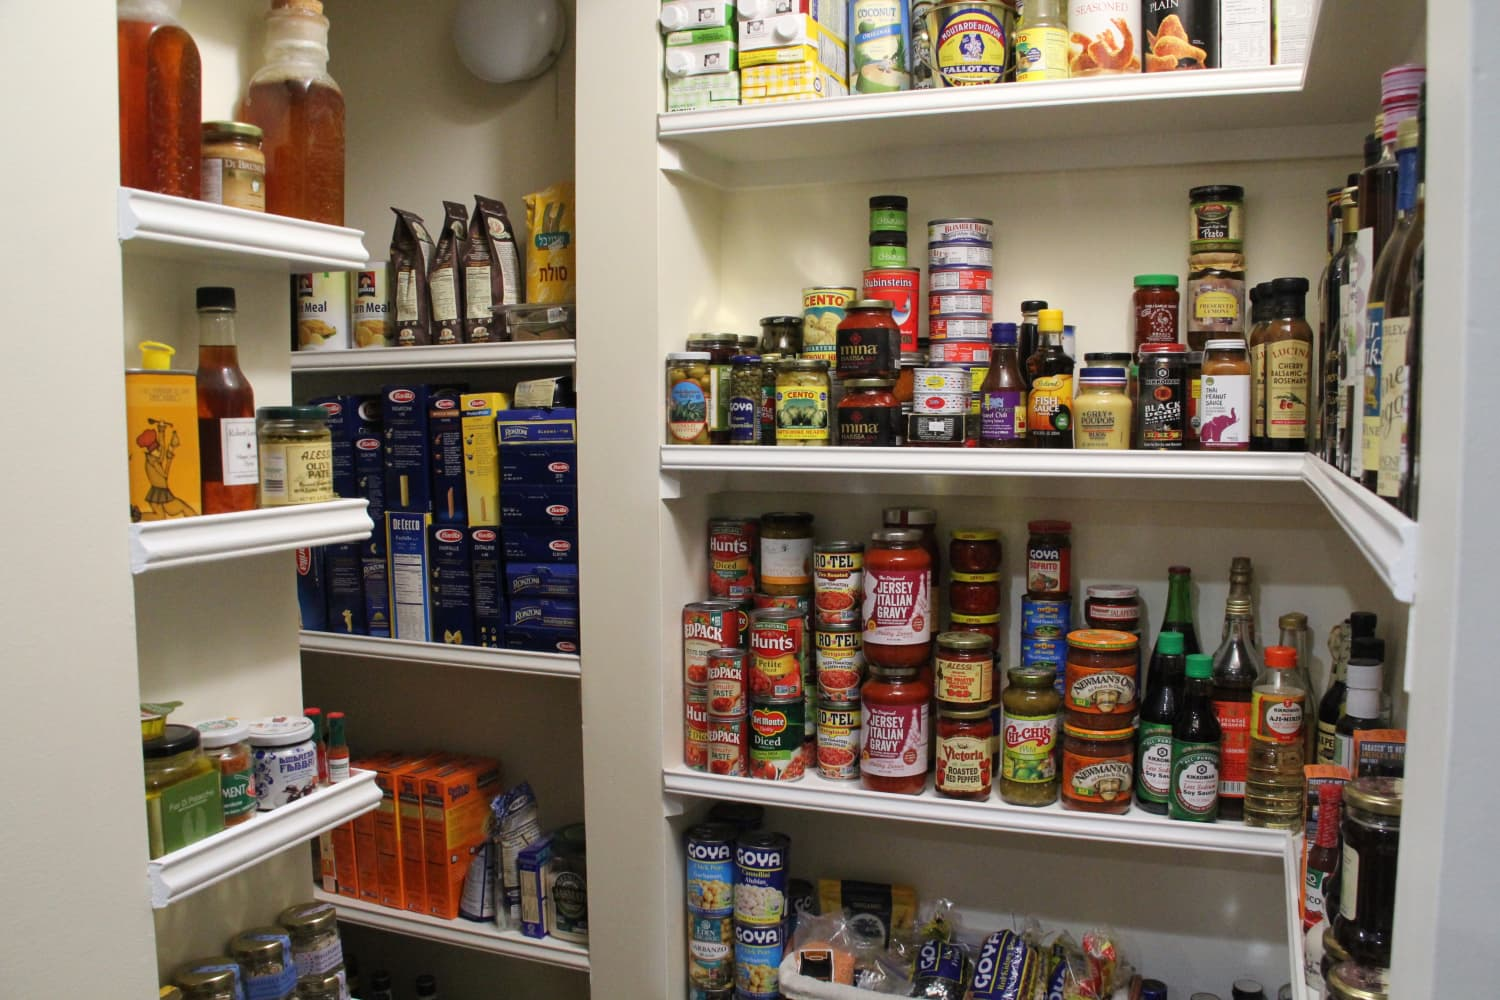 The Top 10 Pantry-Organizing Tips the Smartest Home Cooks Know